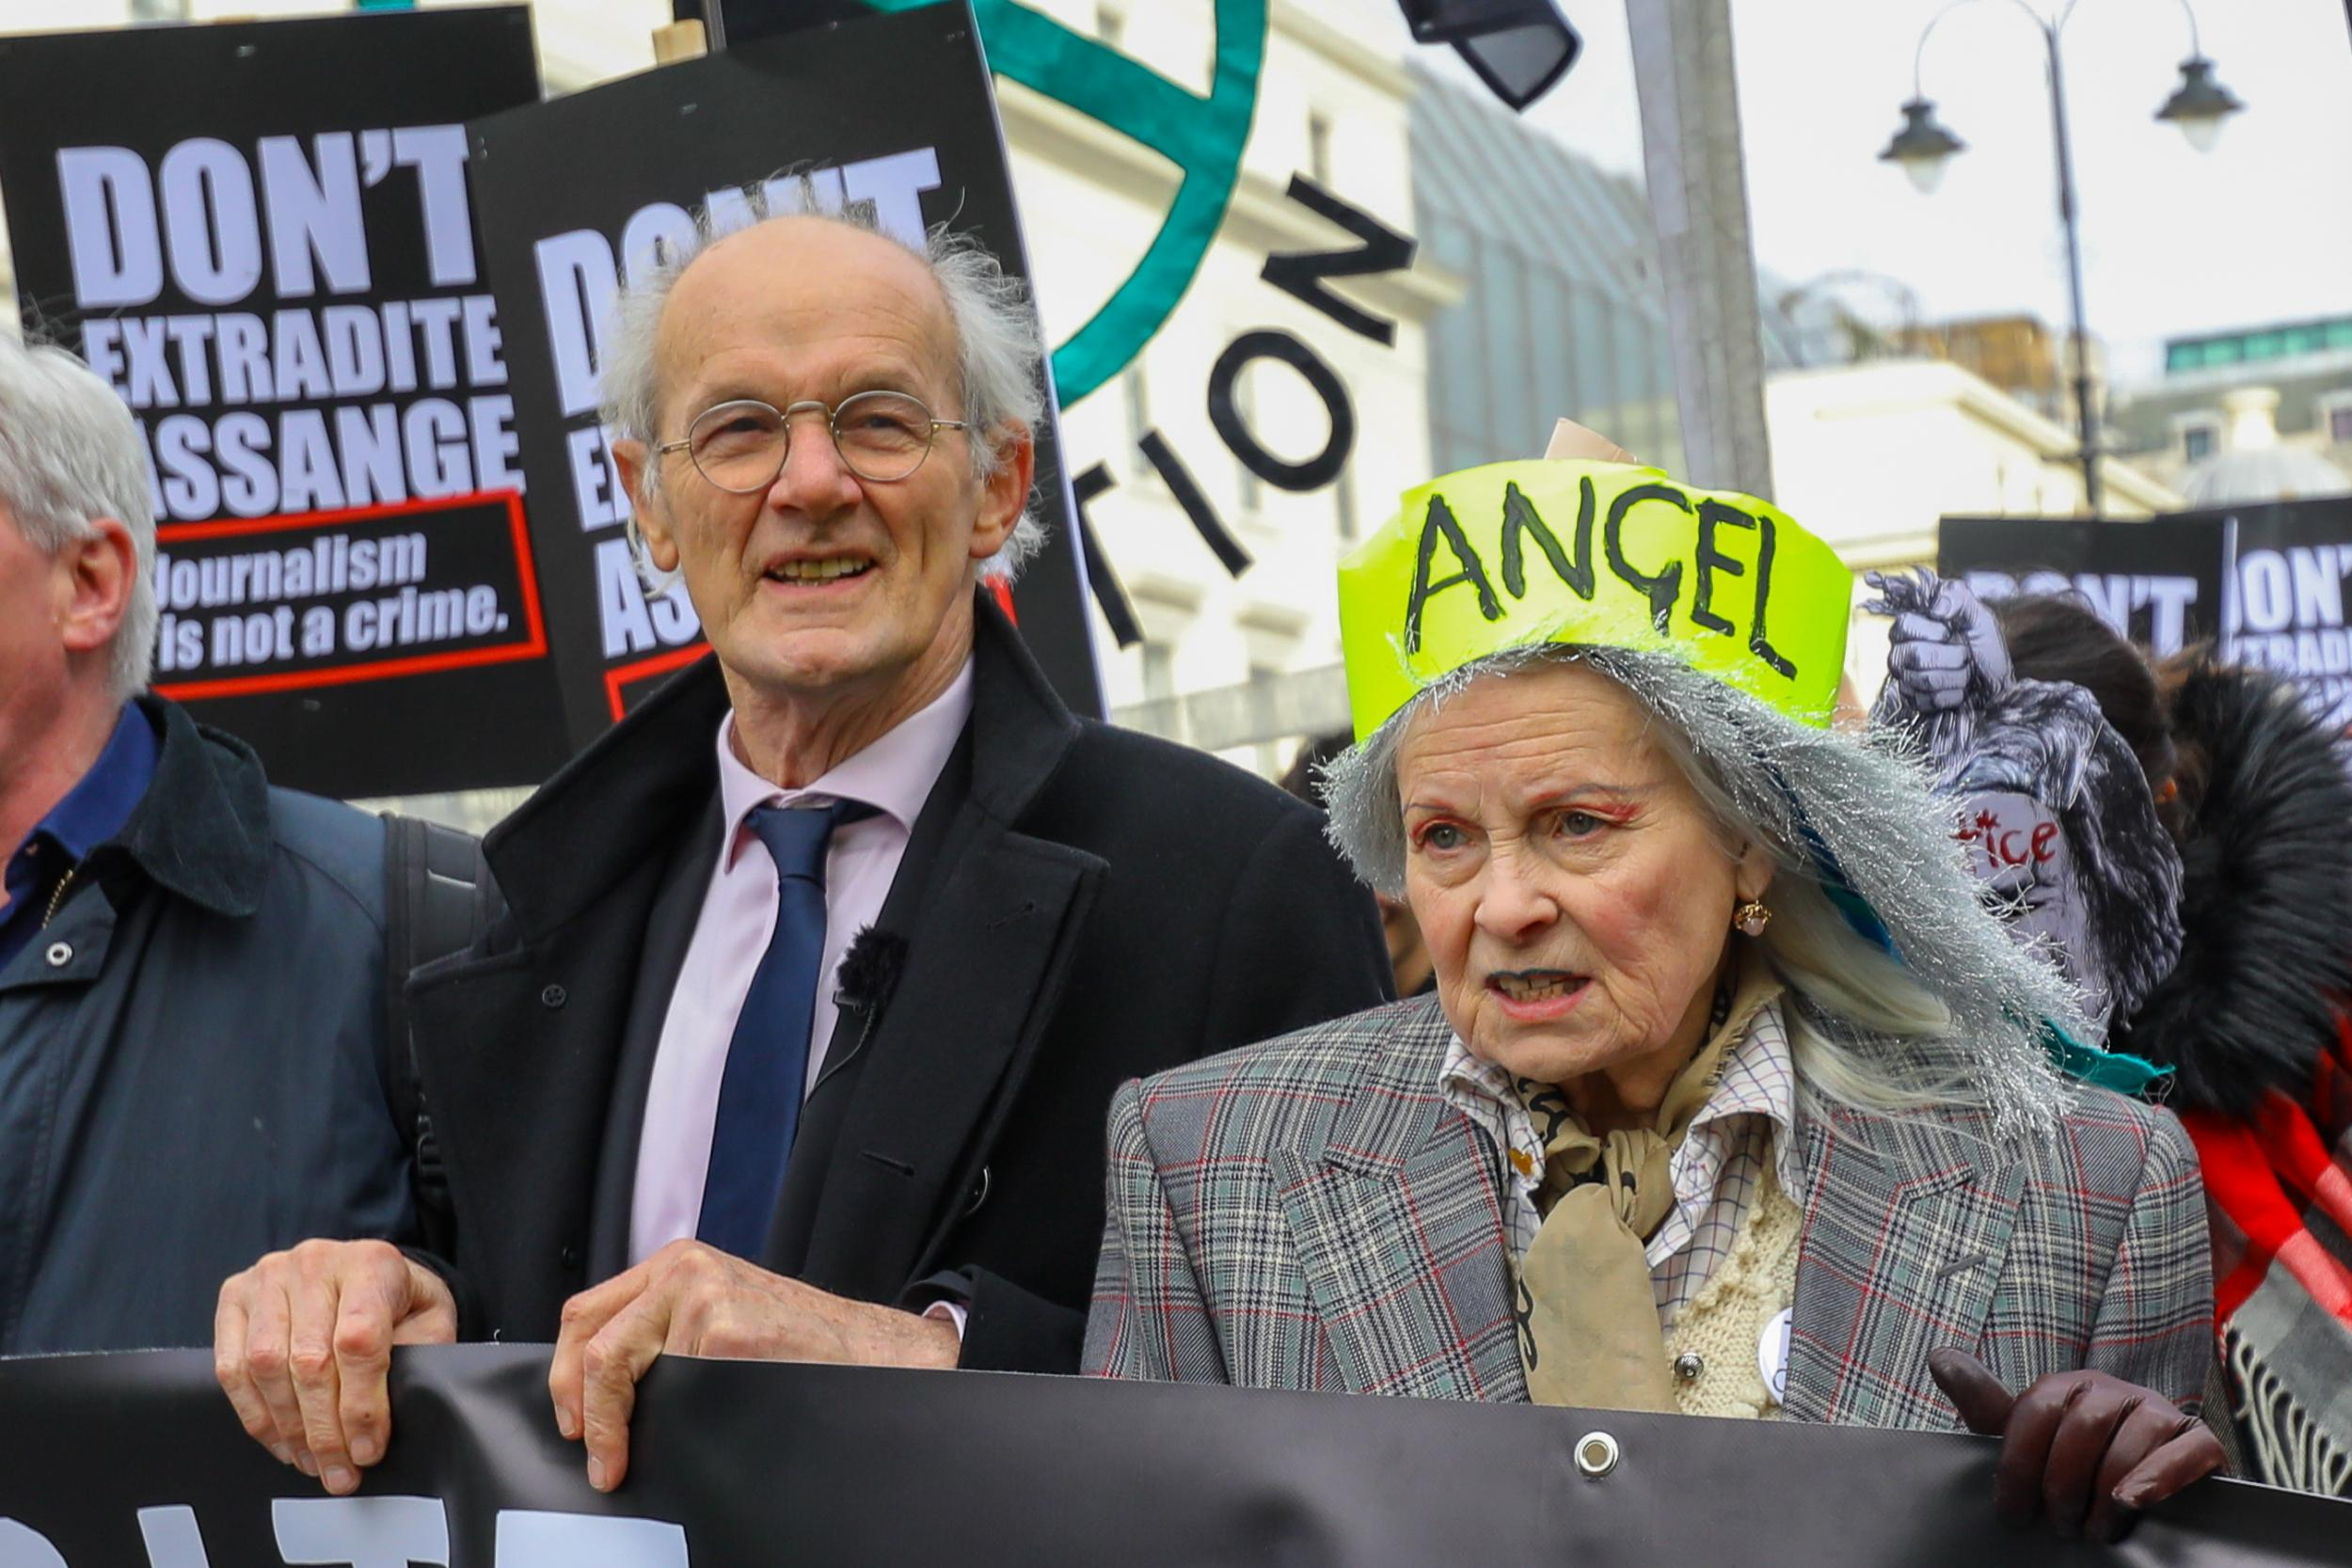 Hundreds of protesters march on parliament ahead of Julian Assange extradition hearing